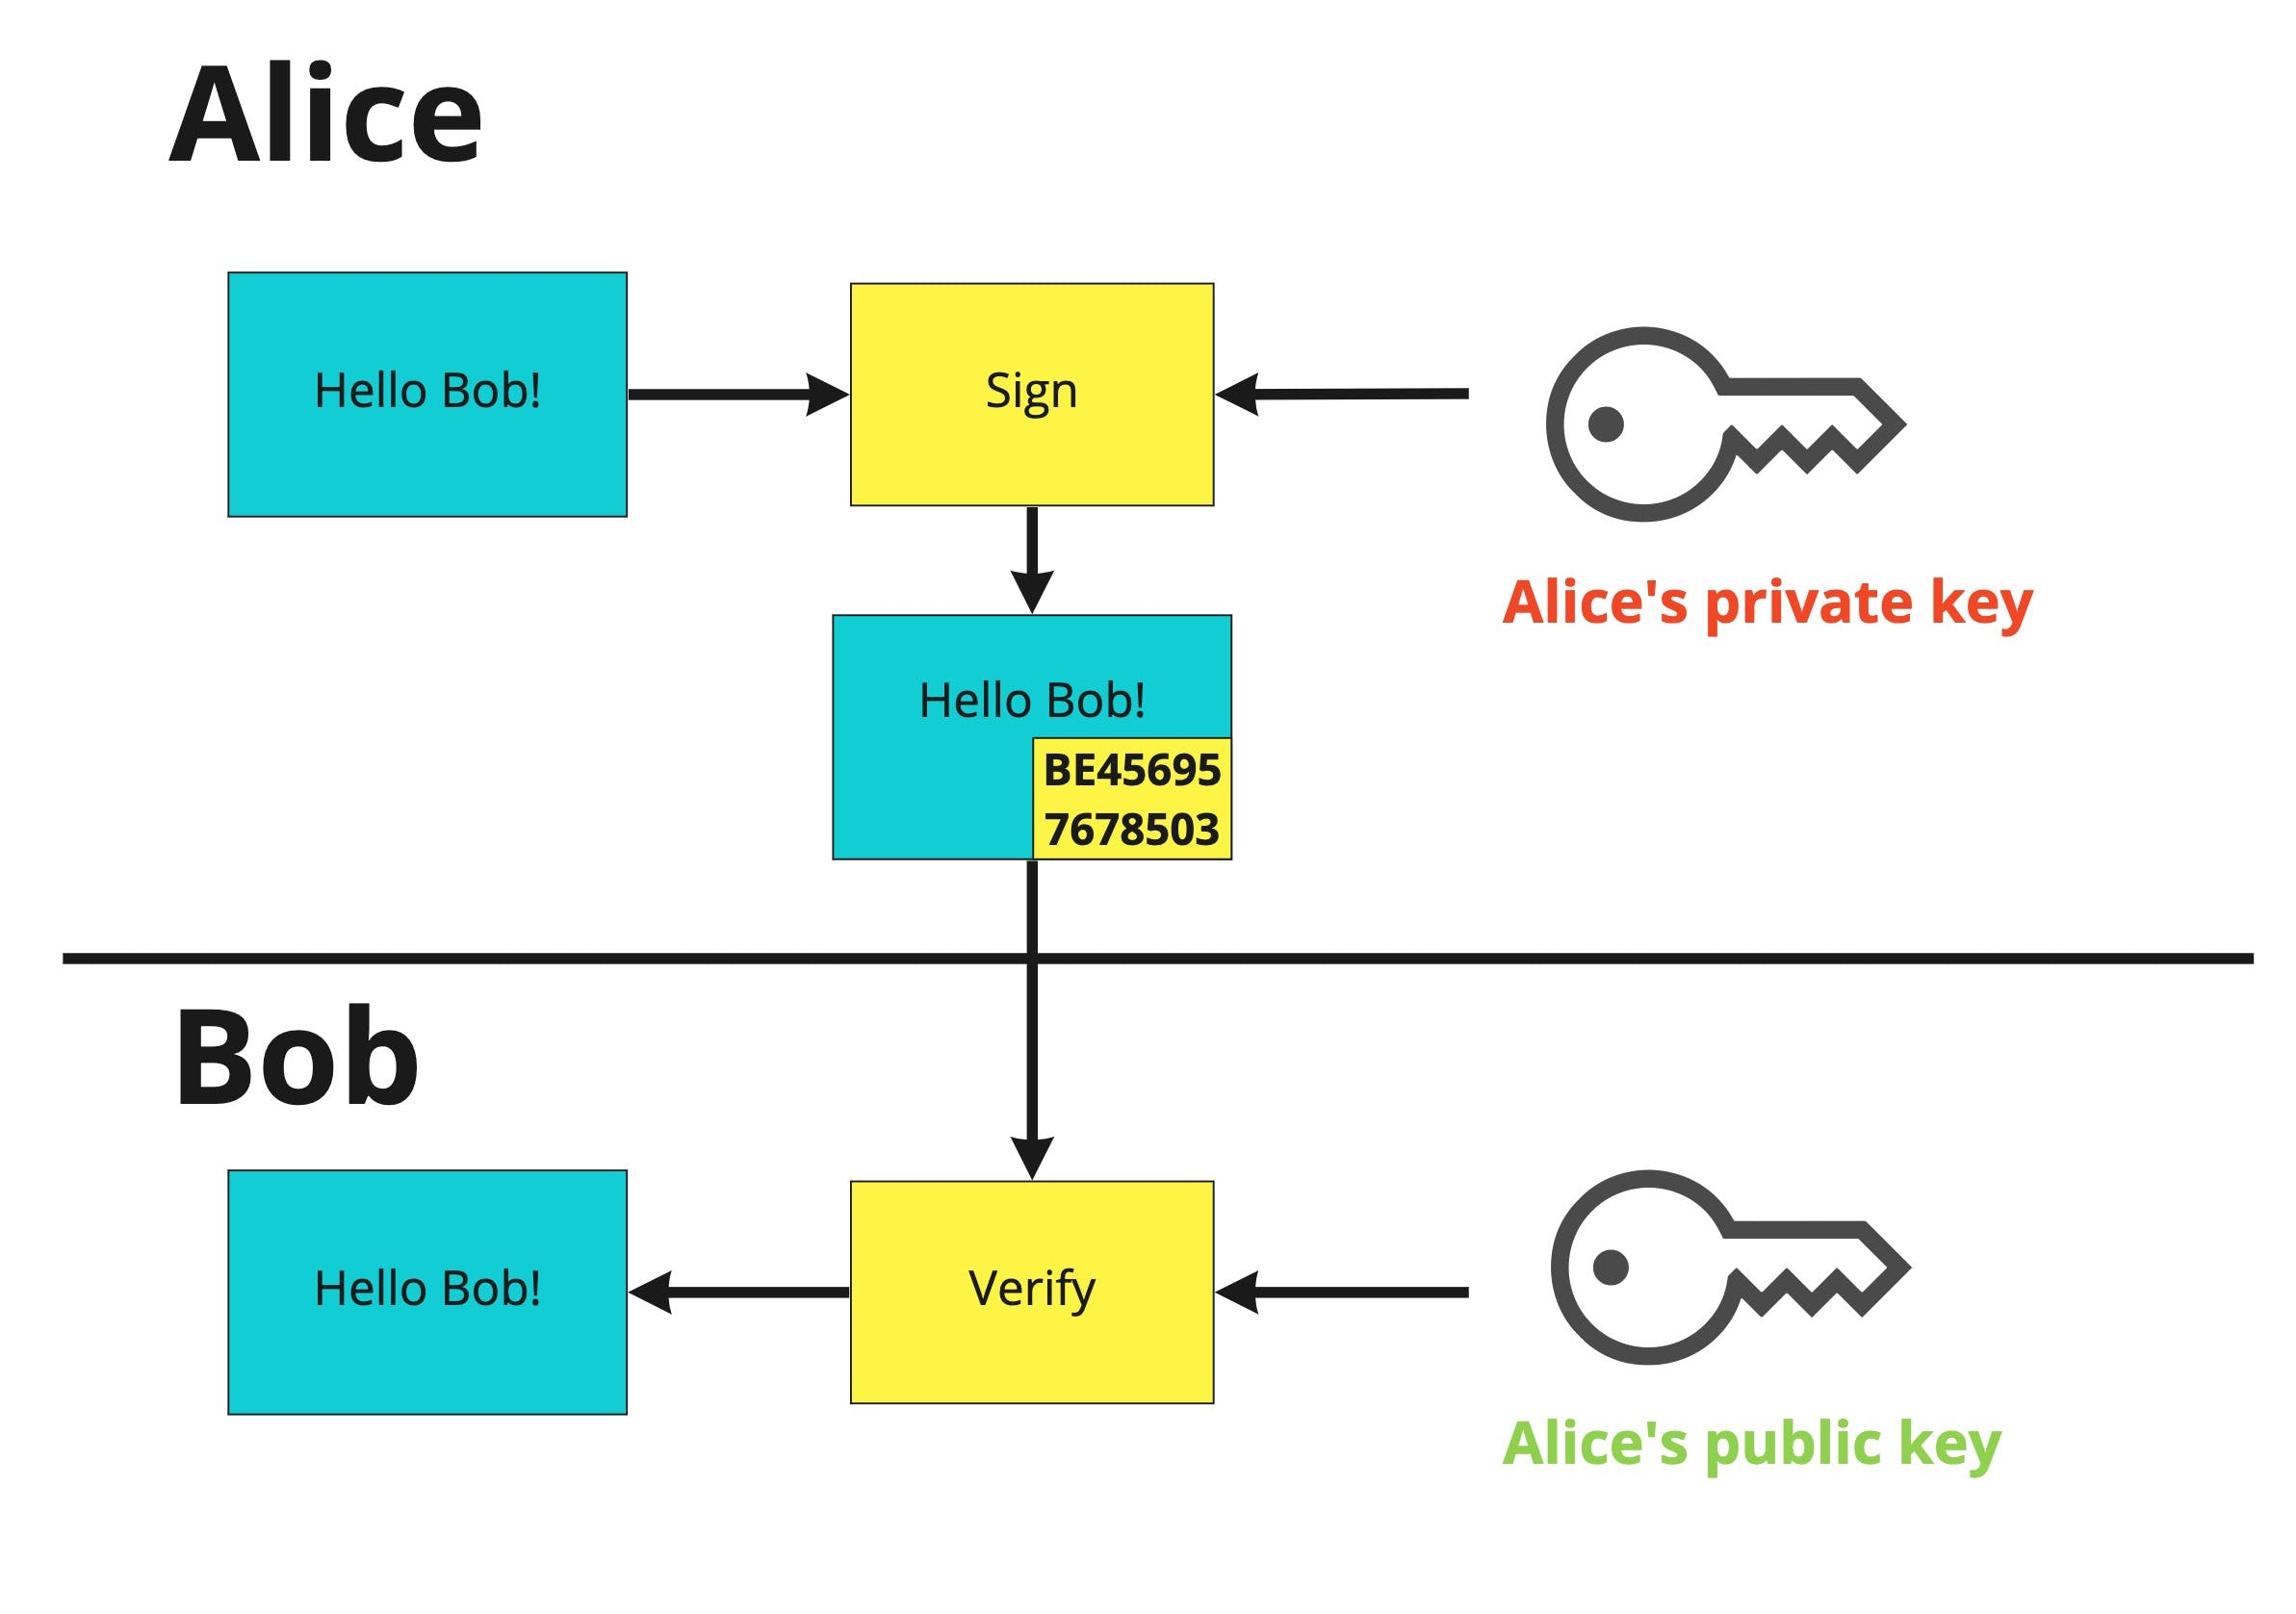 Alice and Bob's user verification using private and public keys